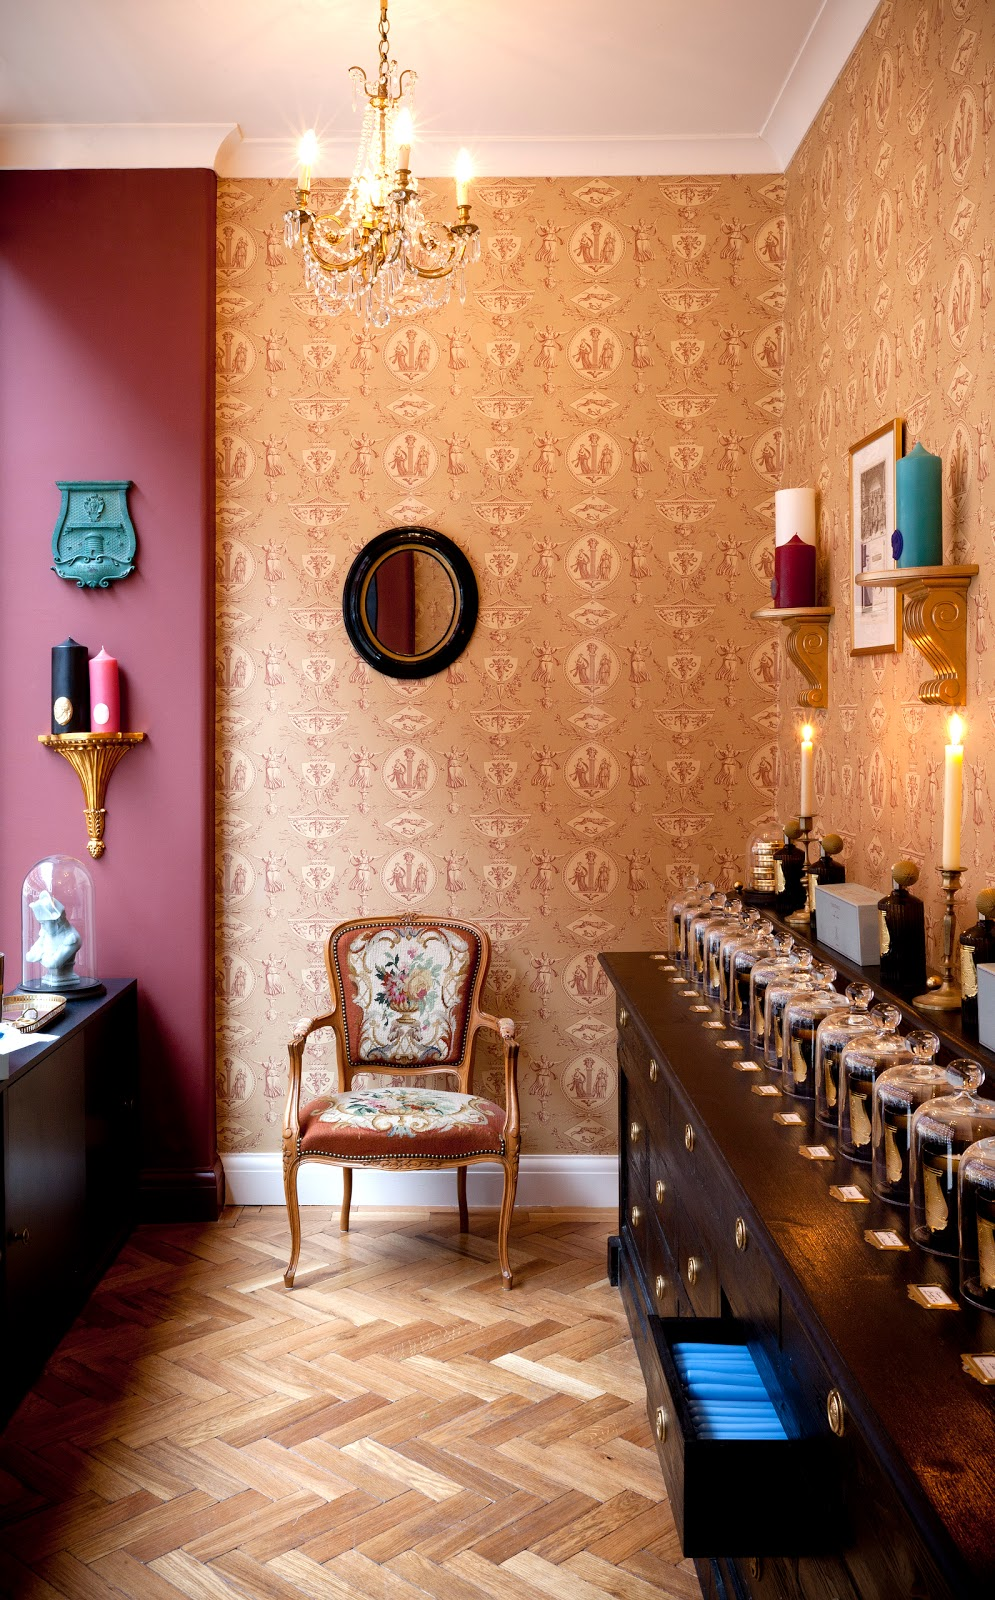 a fragrant arrival in chiltern street cire trudon boutique opening caroline hirons. Black Bedroom Furniture Sets. Home Design Ideas